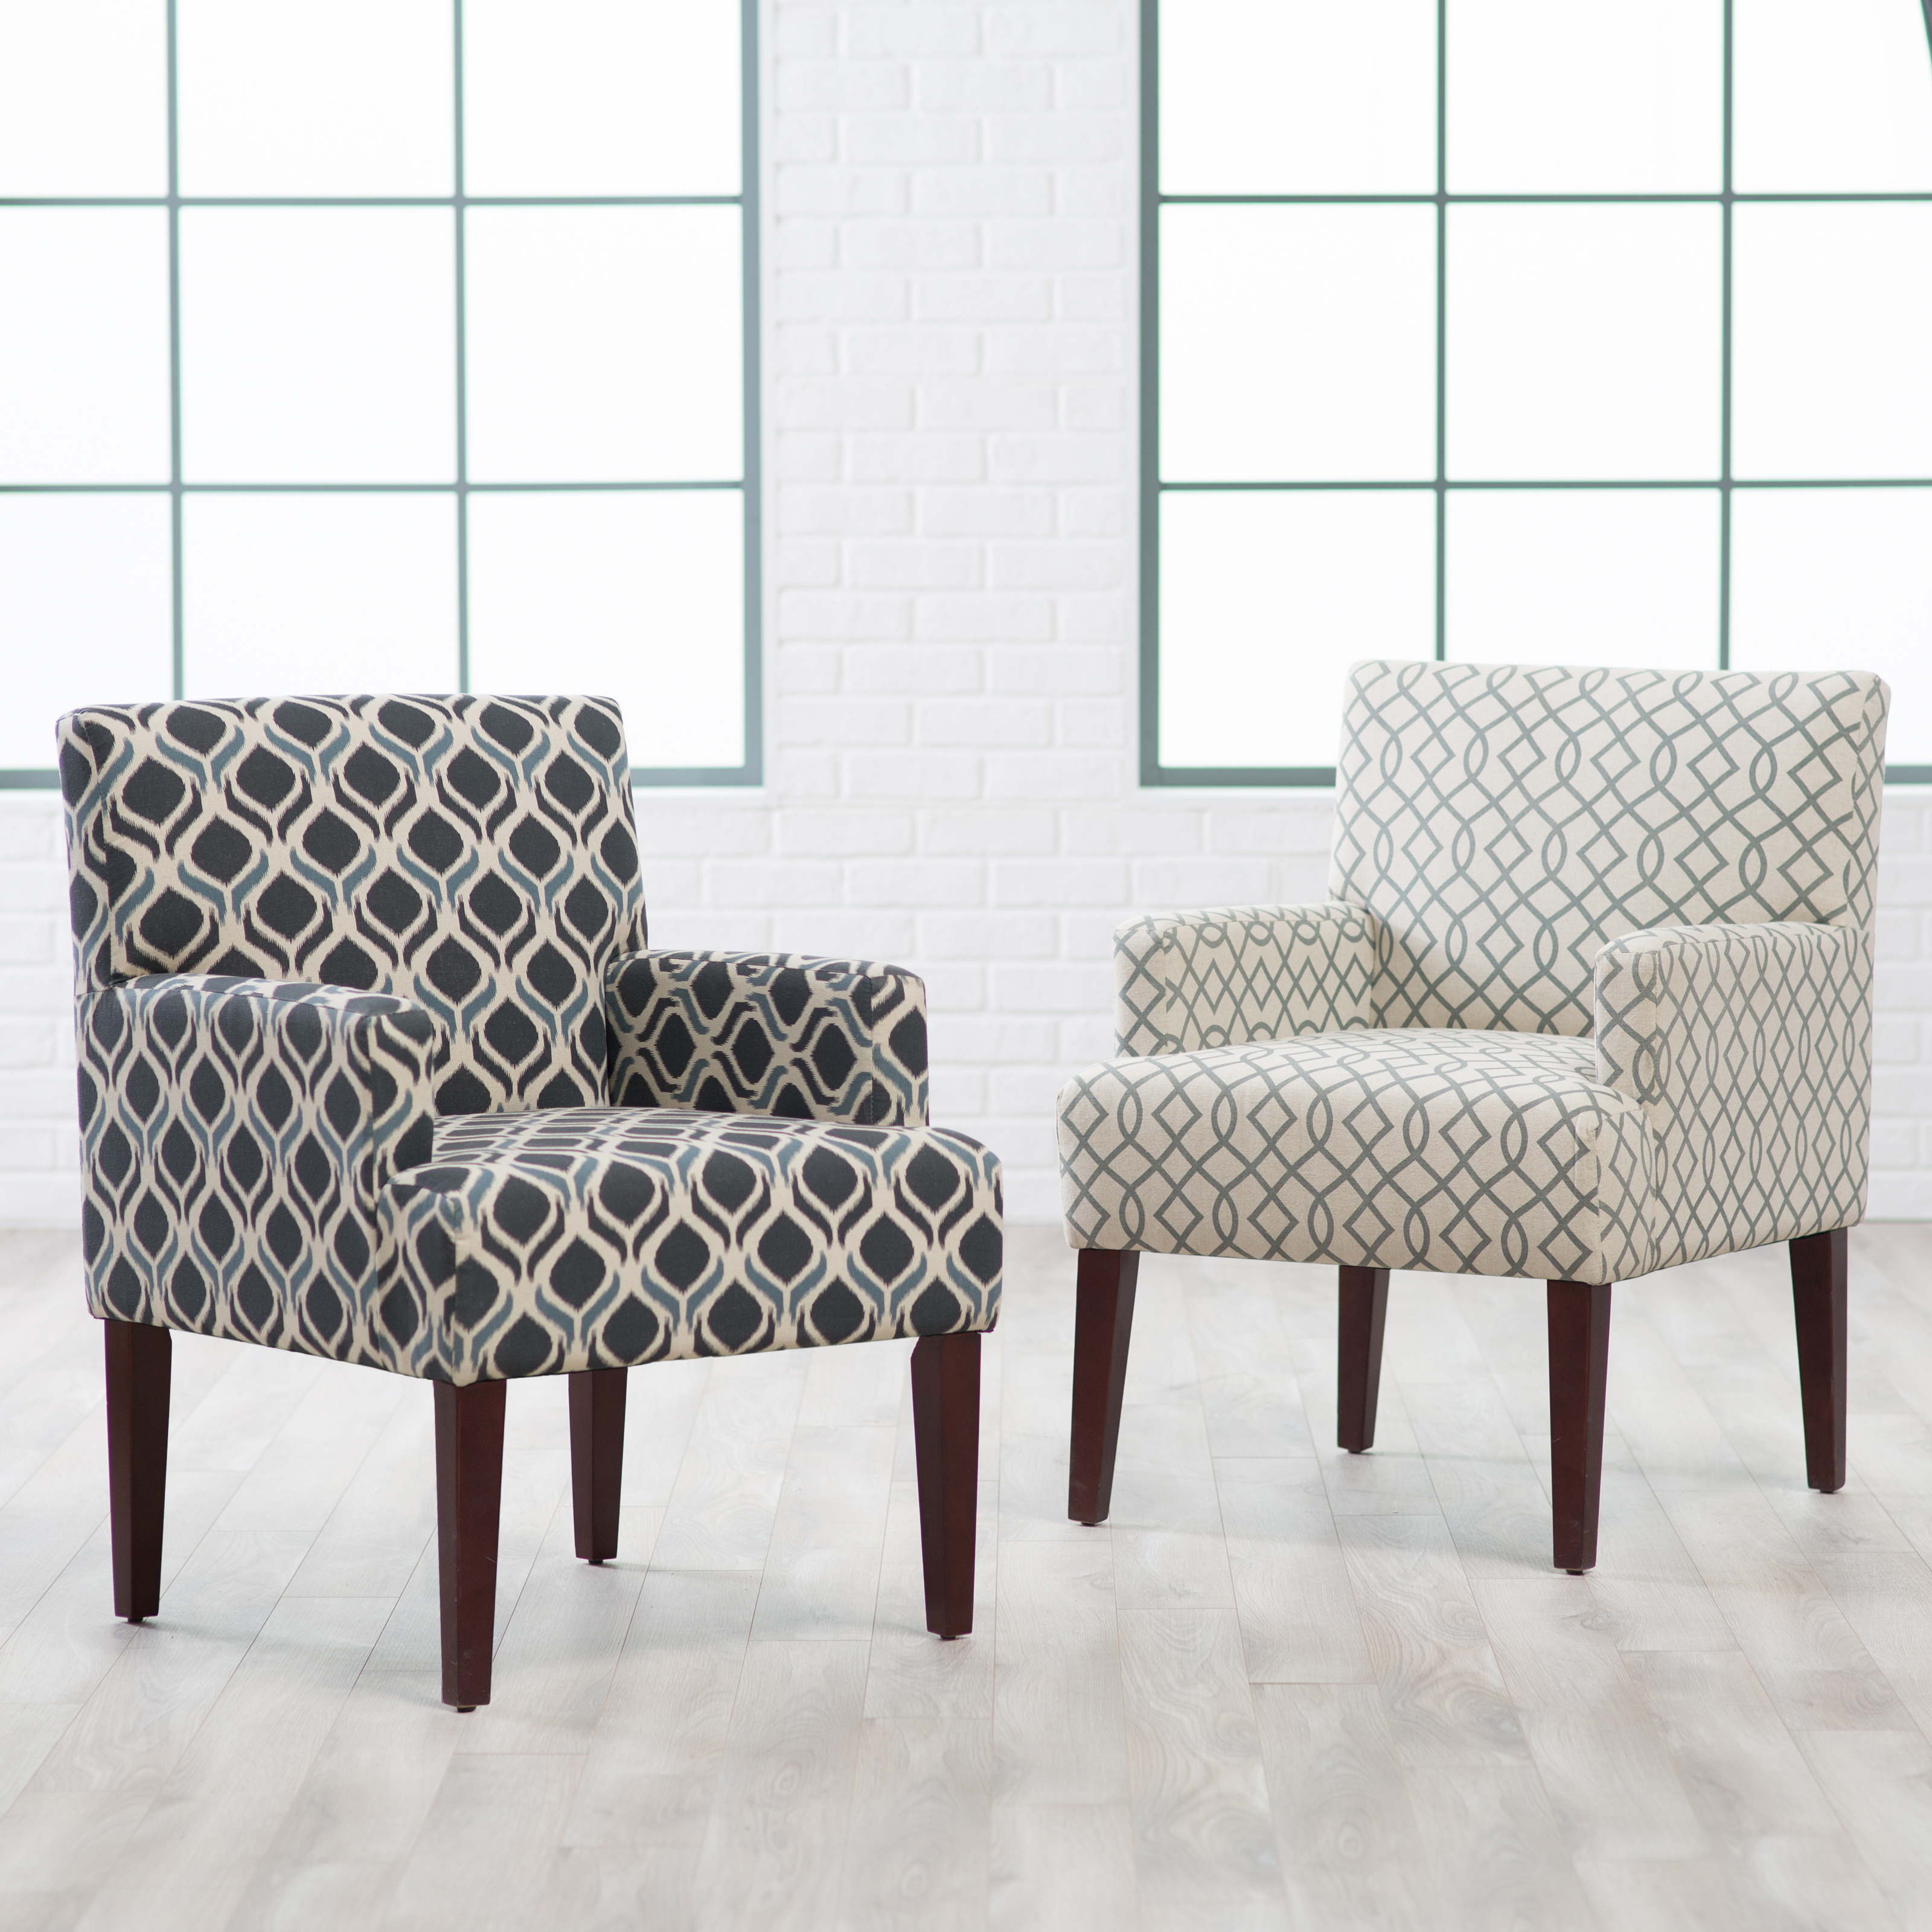 Charming Belham Living Geo Accent Chair With Arms Accent Chairs At Hayneedle. Accent  Chairs With Arms